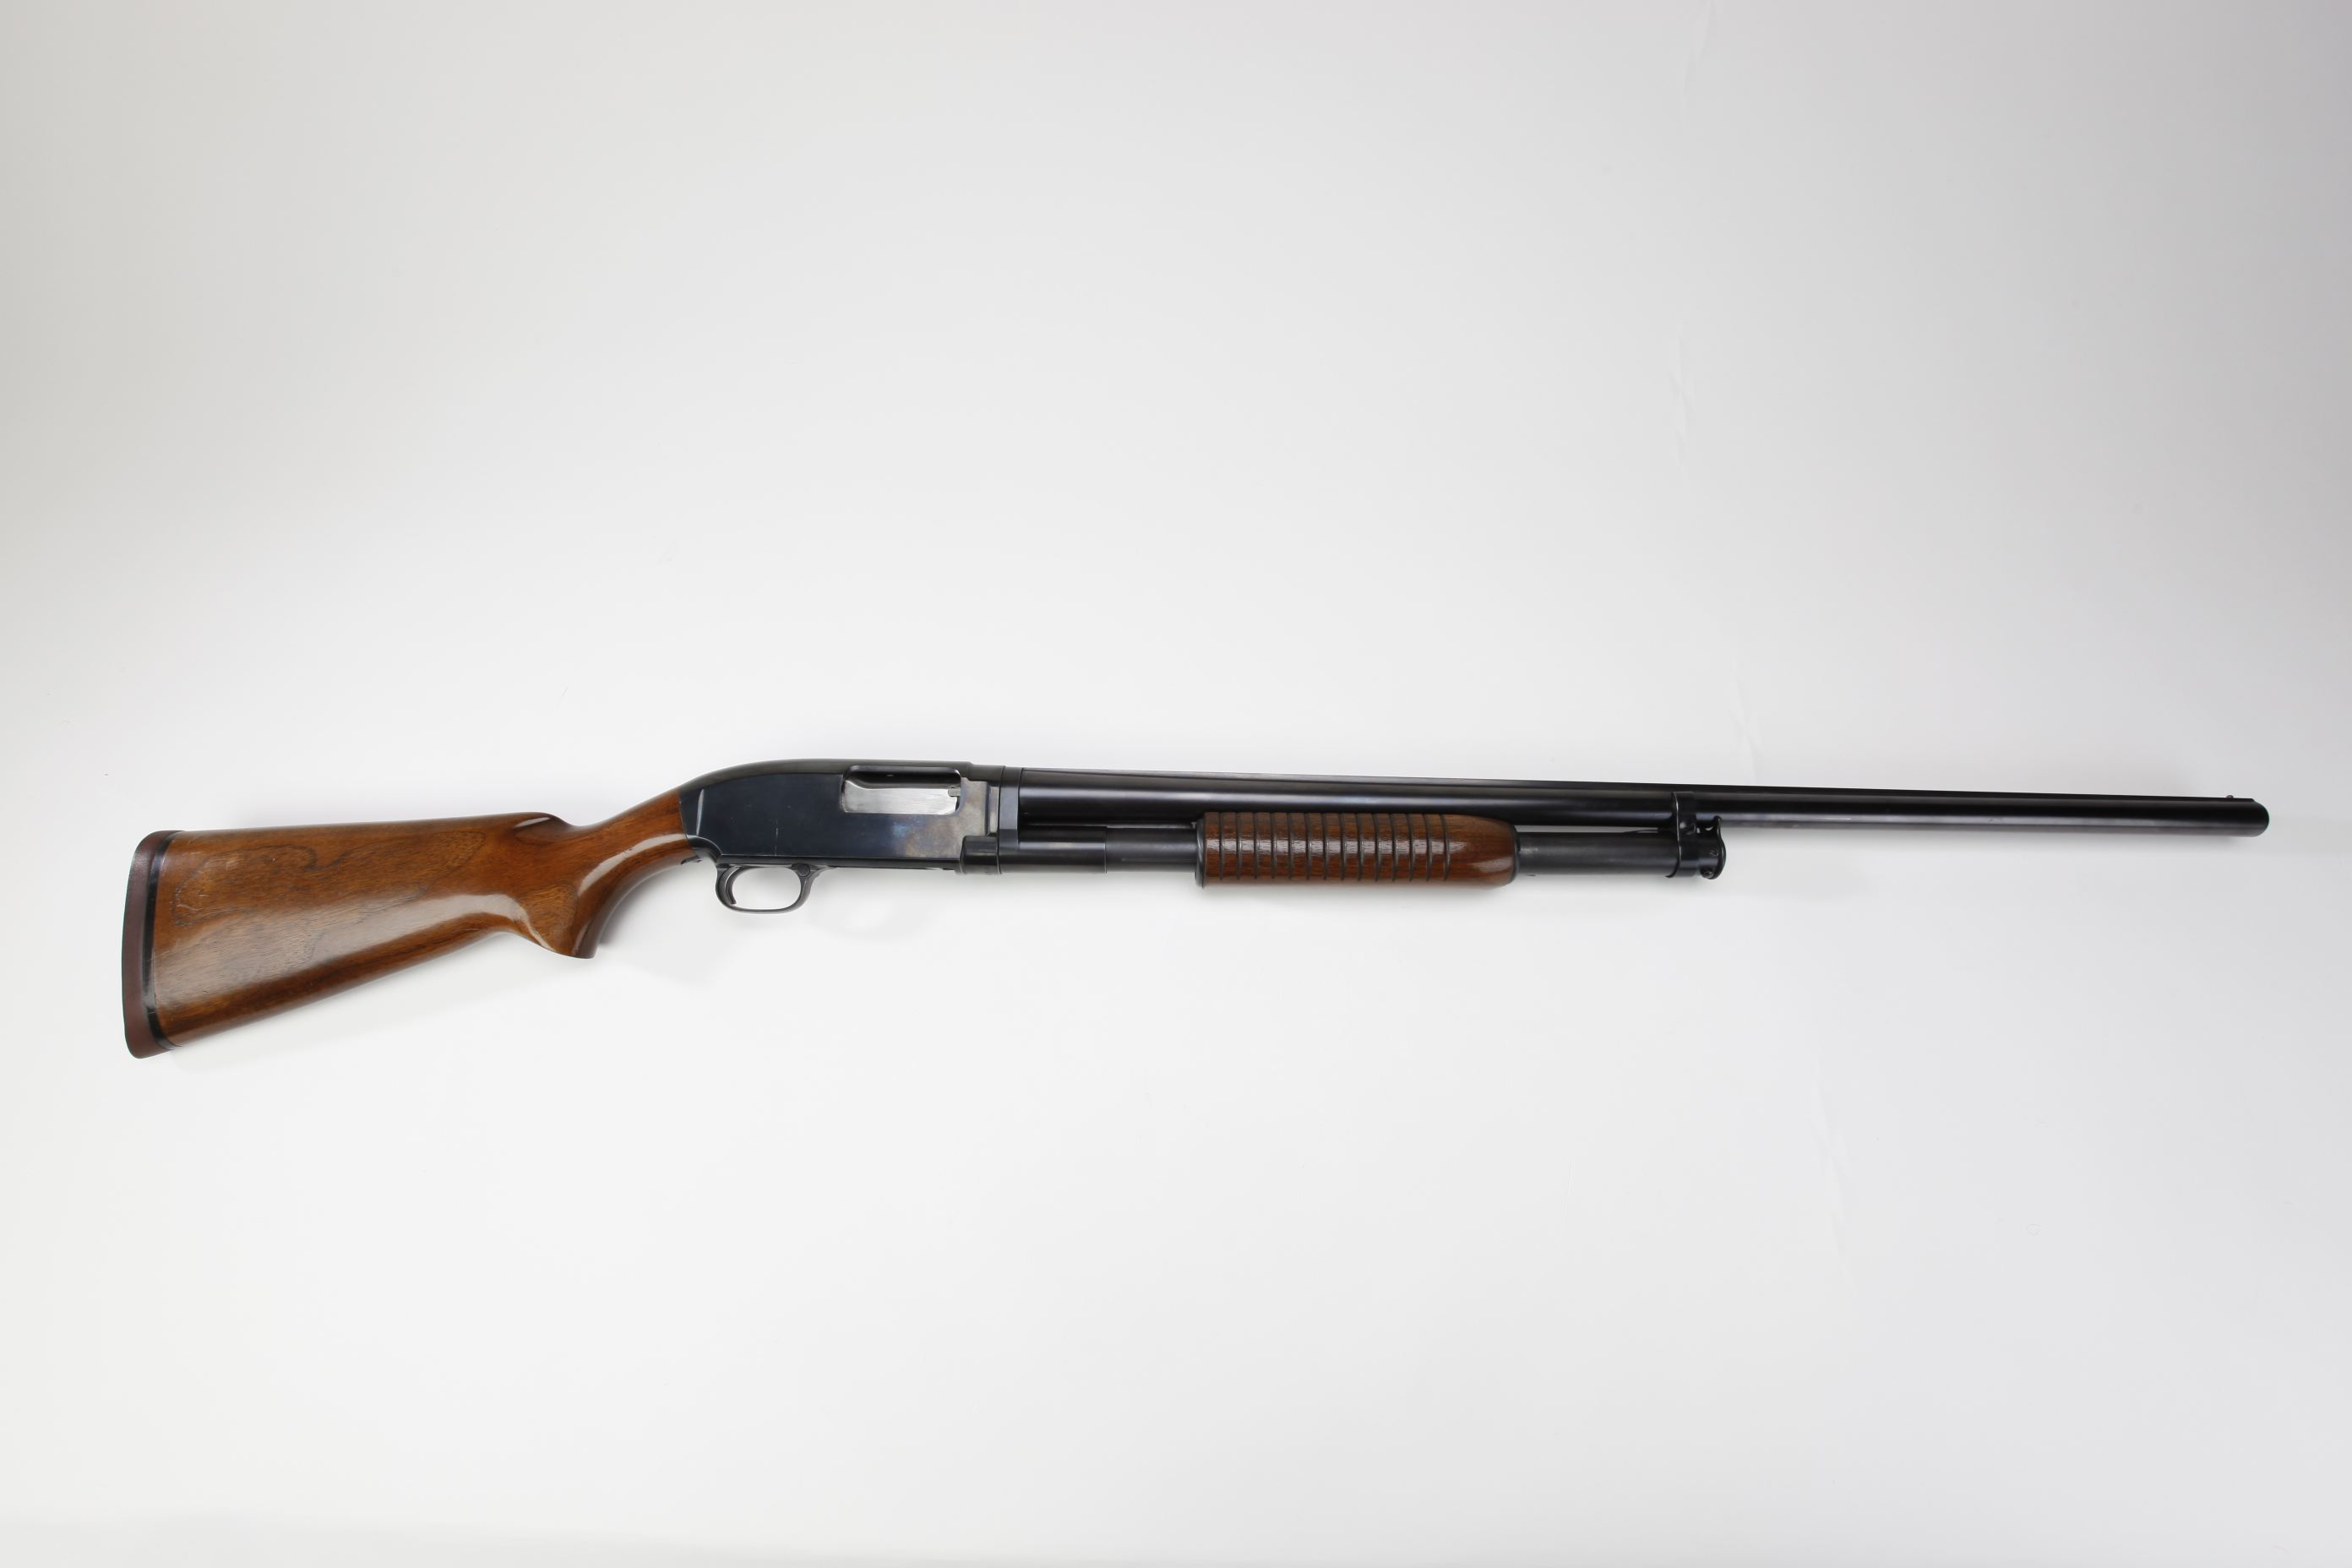 Winchester (New Haven, CT) Model 12 Black Diamond Trap Slide-Action Shotgun